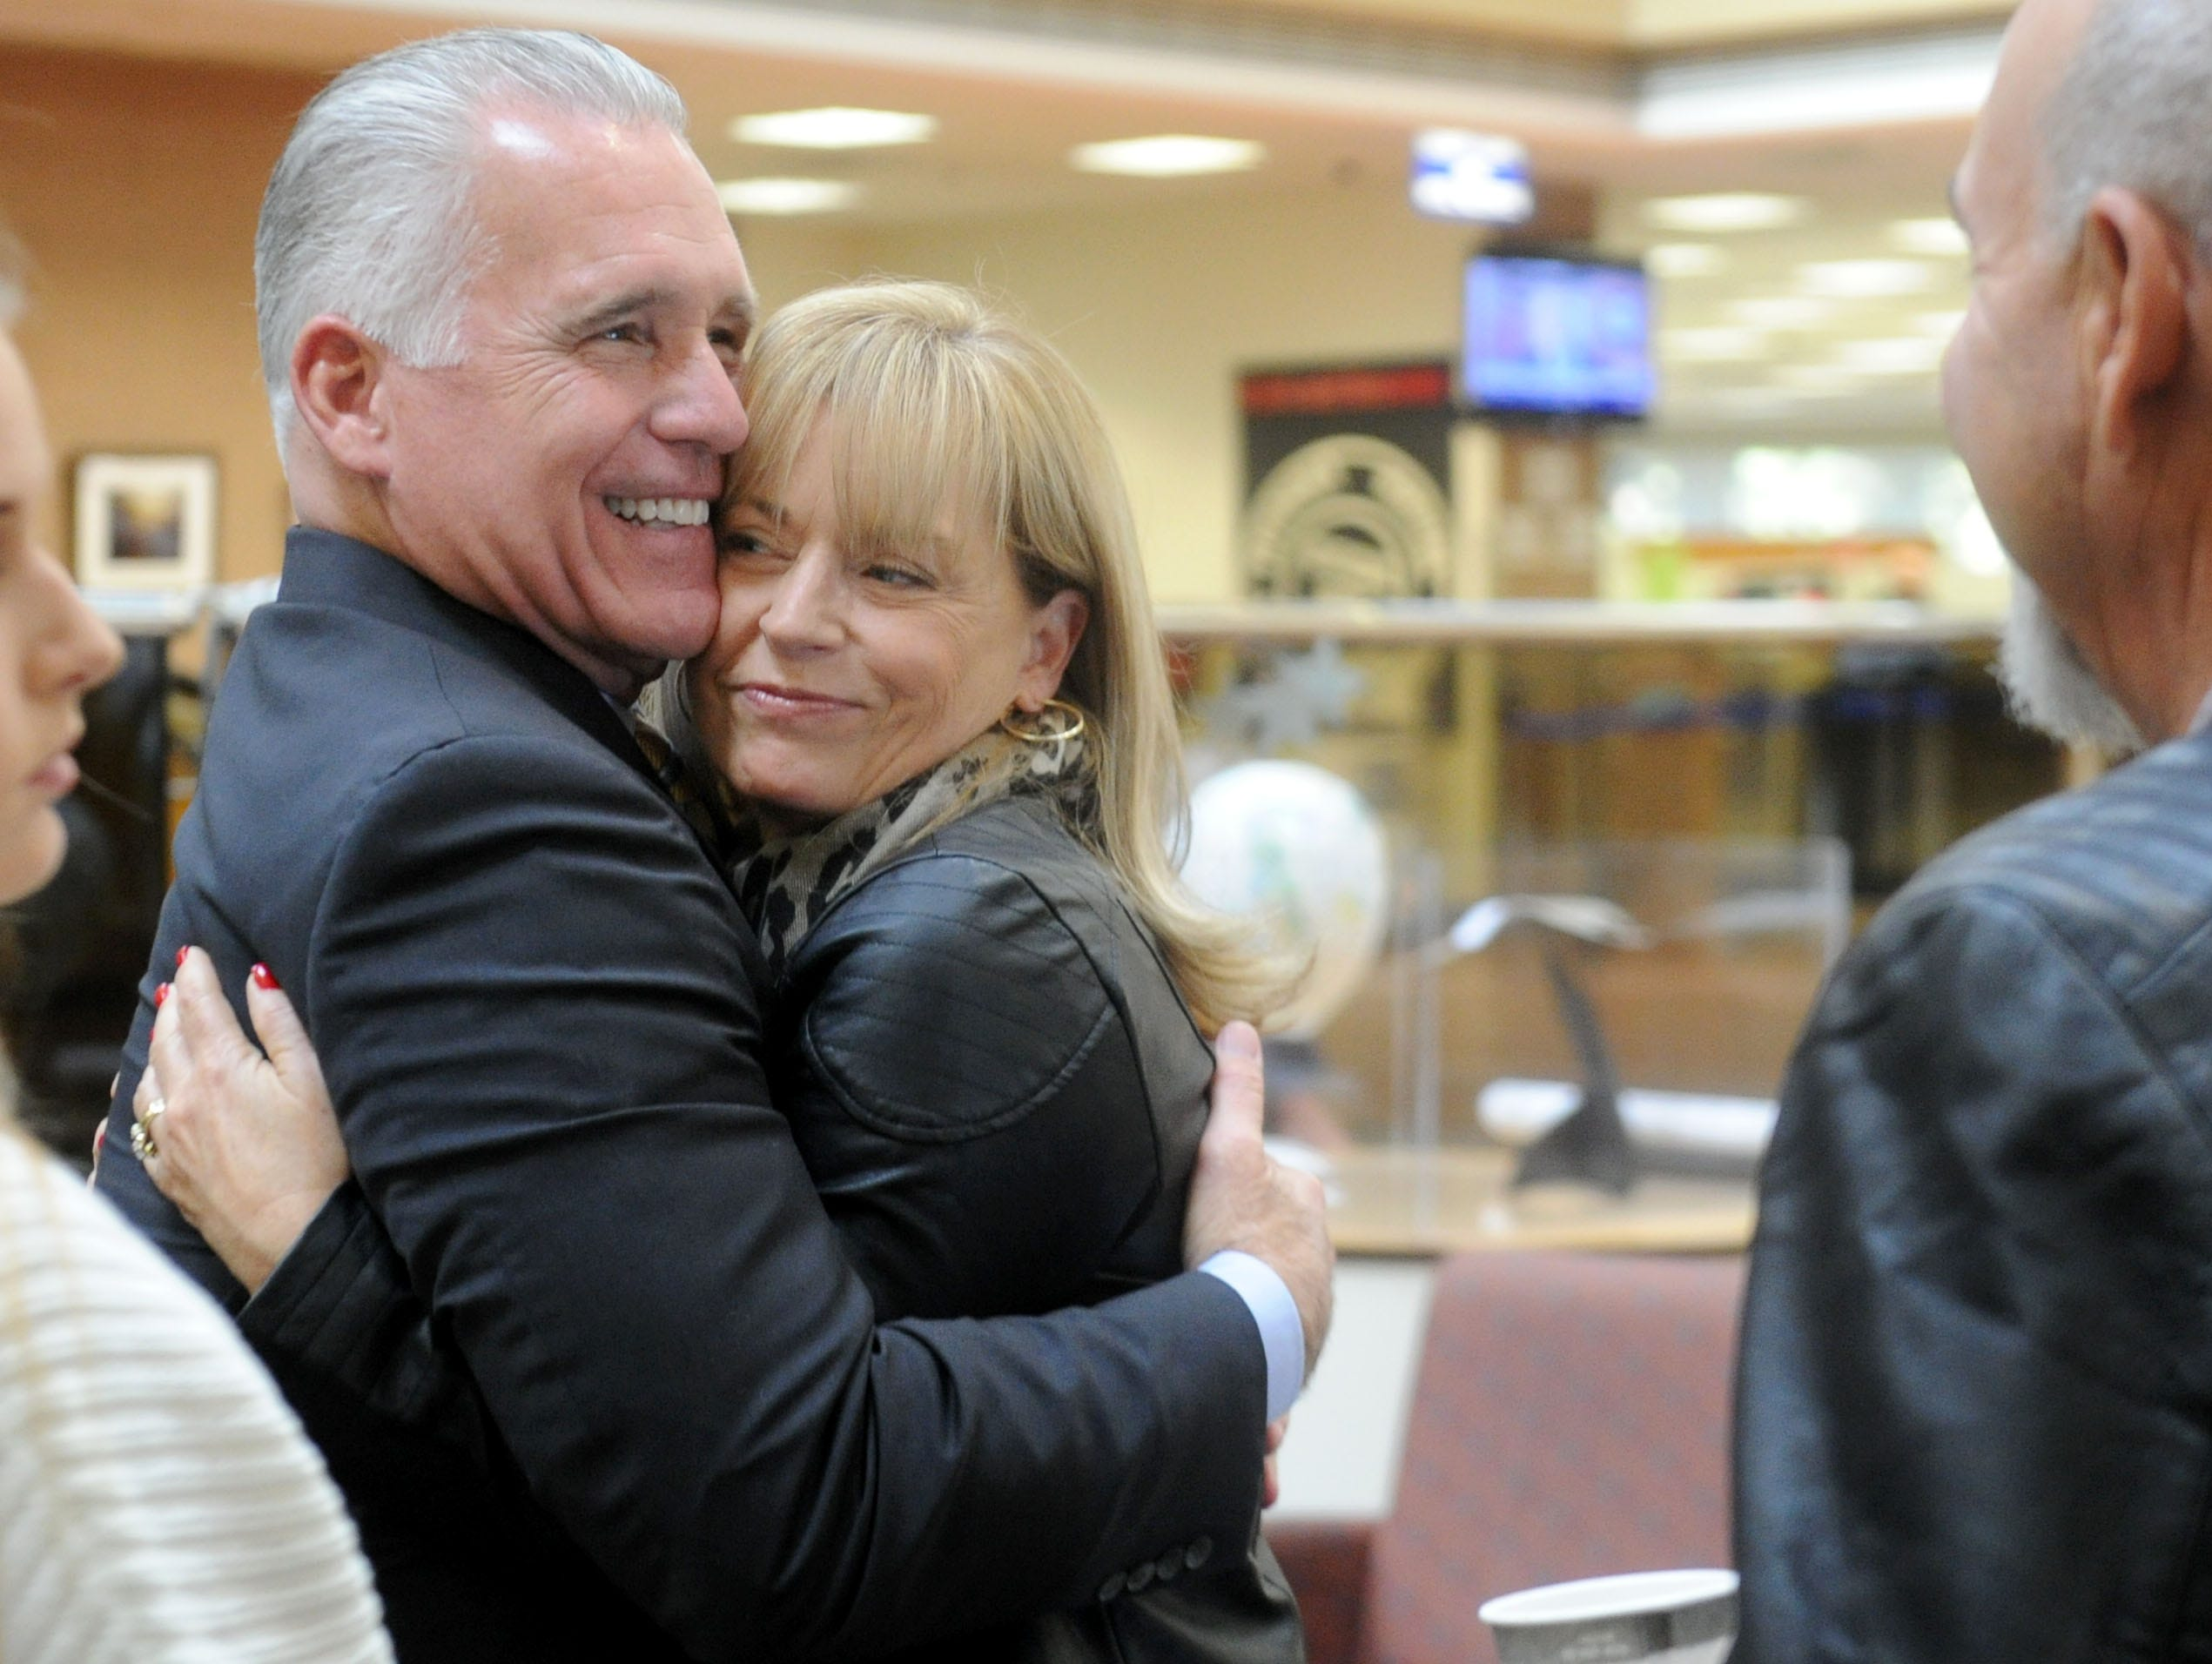 Supervisor Peter Foy hugs his wife Tara Foy at a going-away reception Tuesday outside the Board of Supervisors hearing room in Ventura.